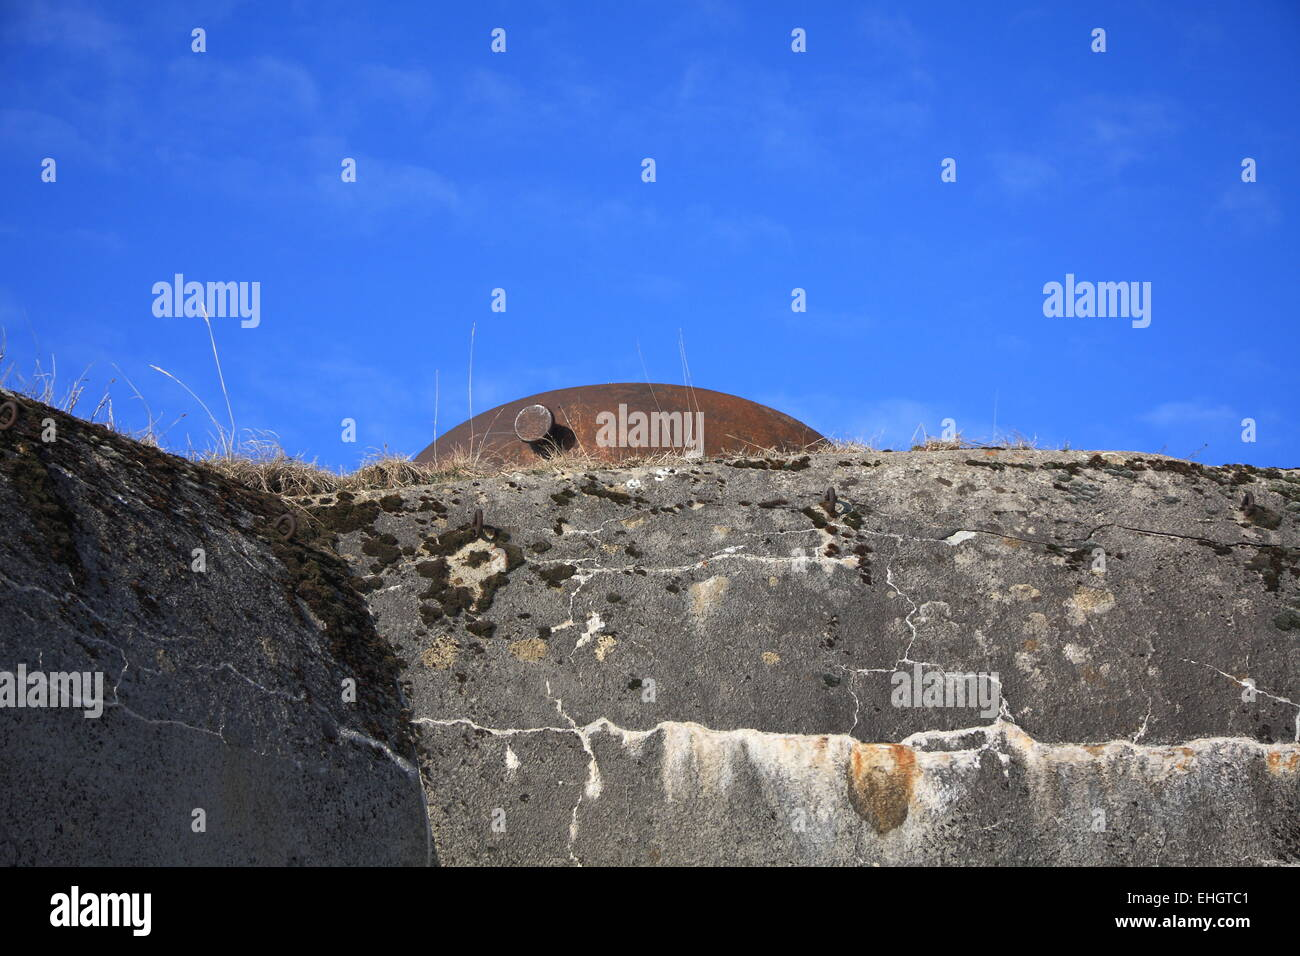 Bunker partial view - Stock Image